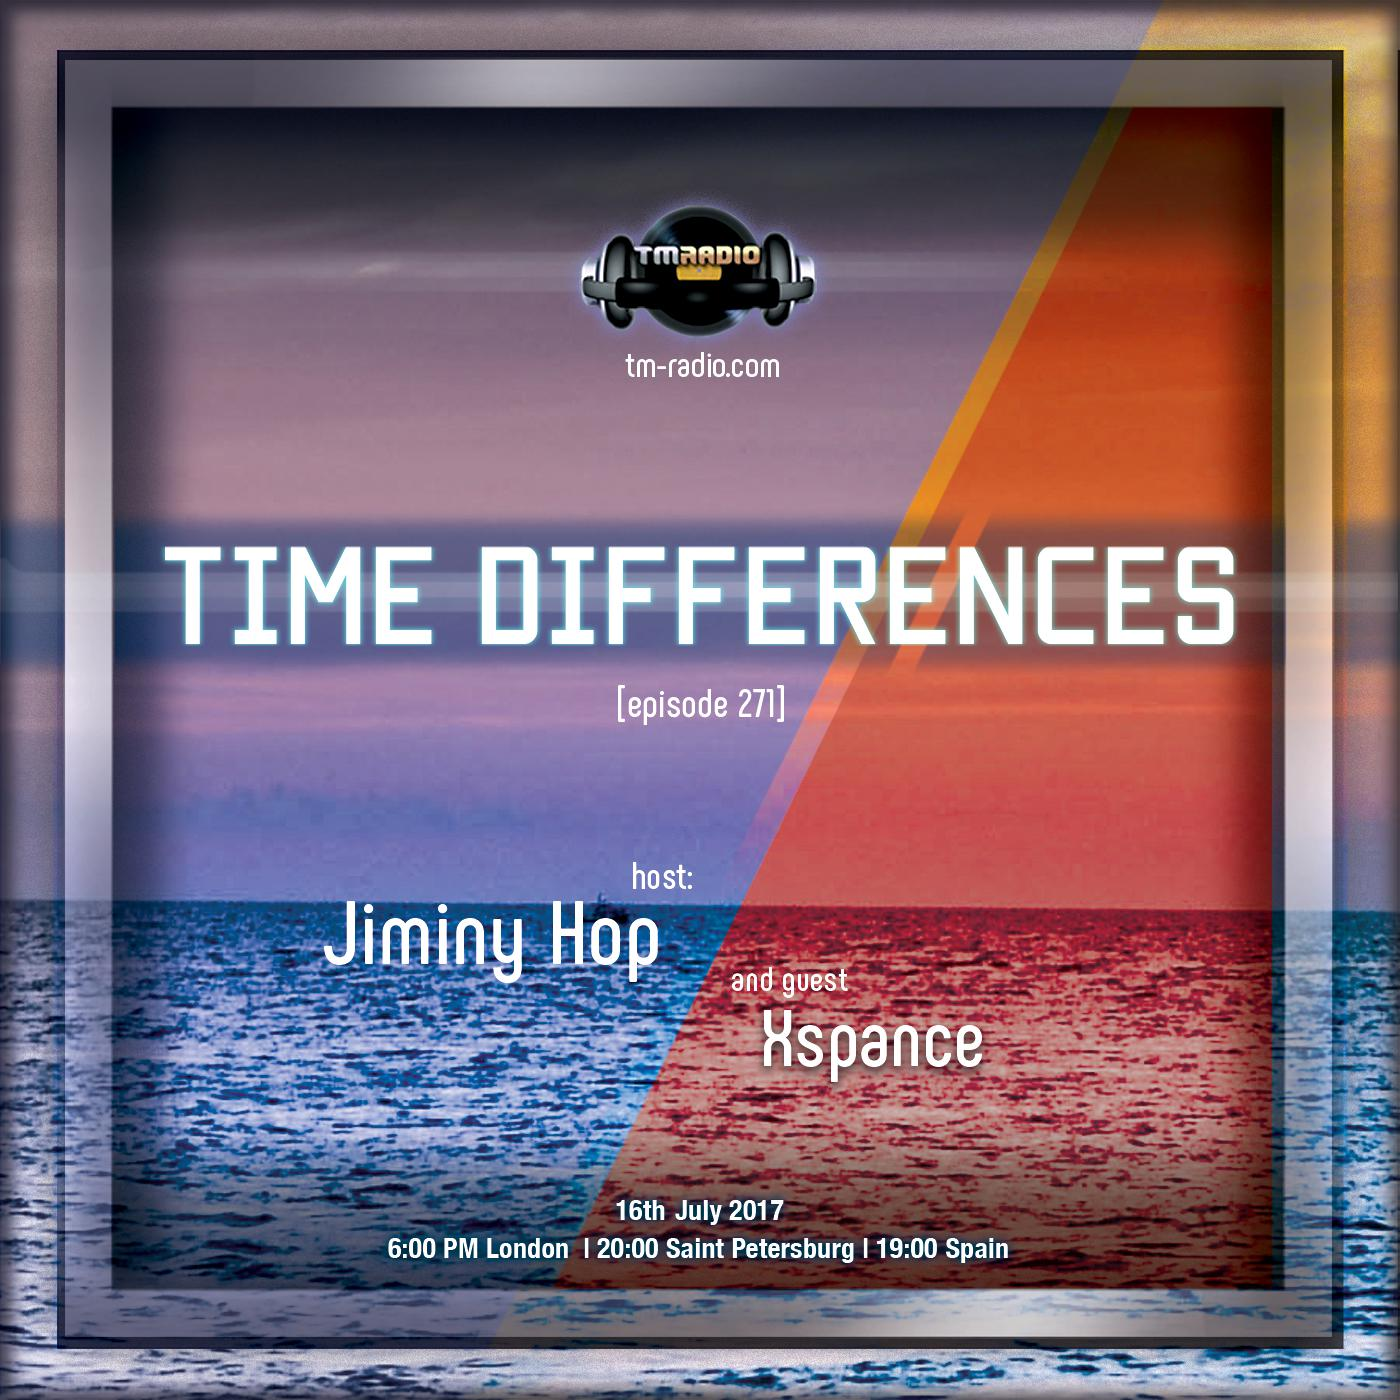 download → Jiminy Hop, XSPANCE - Time Differences 271 on TM Radio - 16-Jul-2017